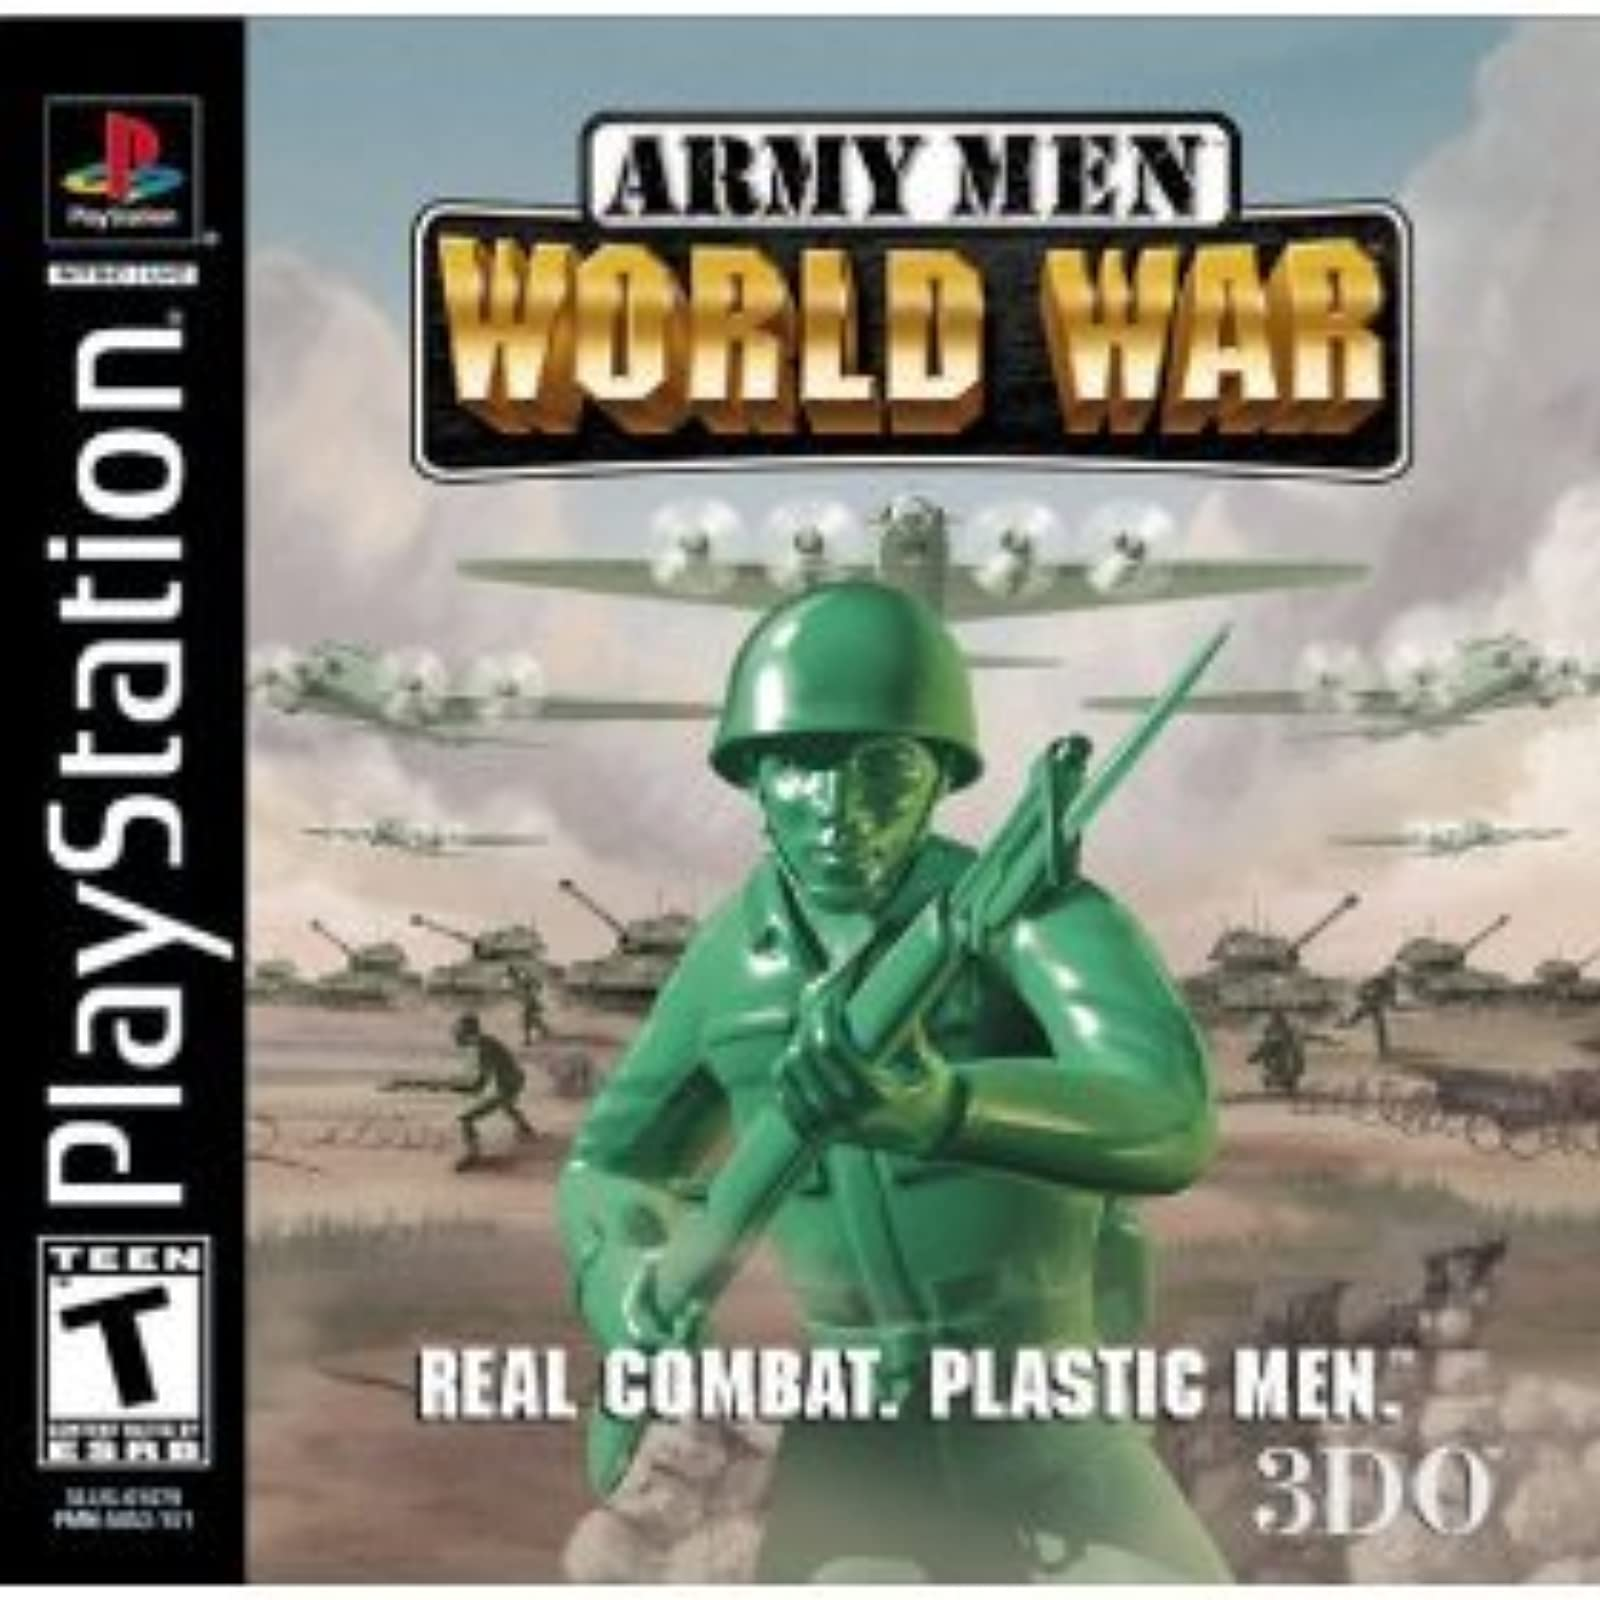 Army Men World War For PlayStation 1 PS1